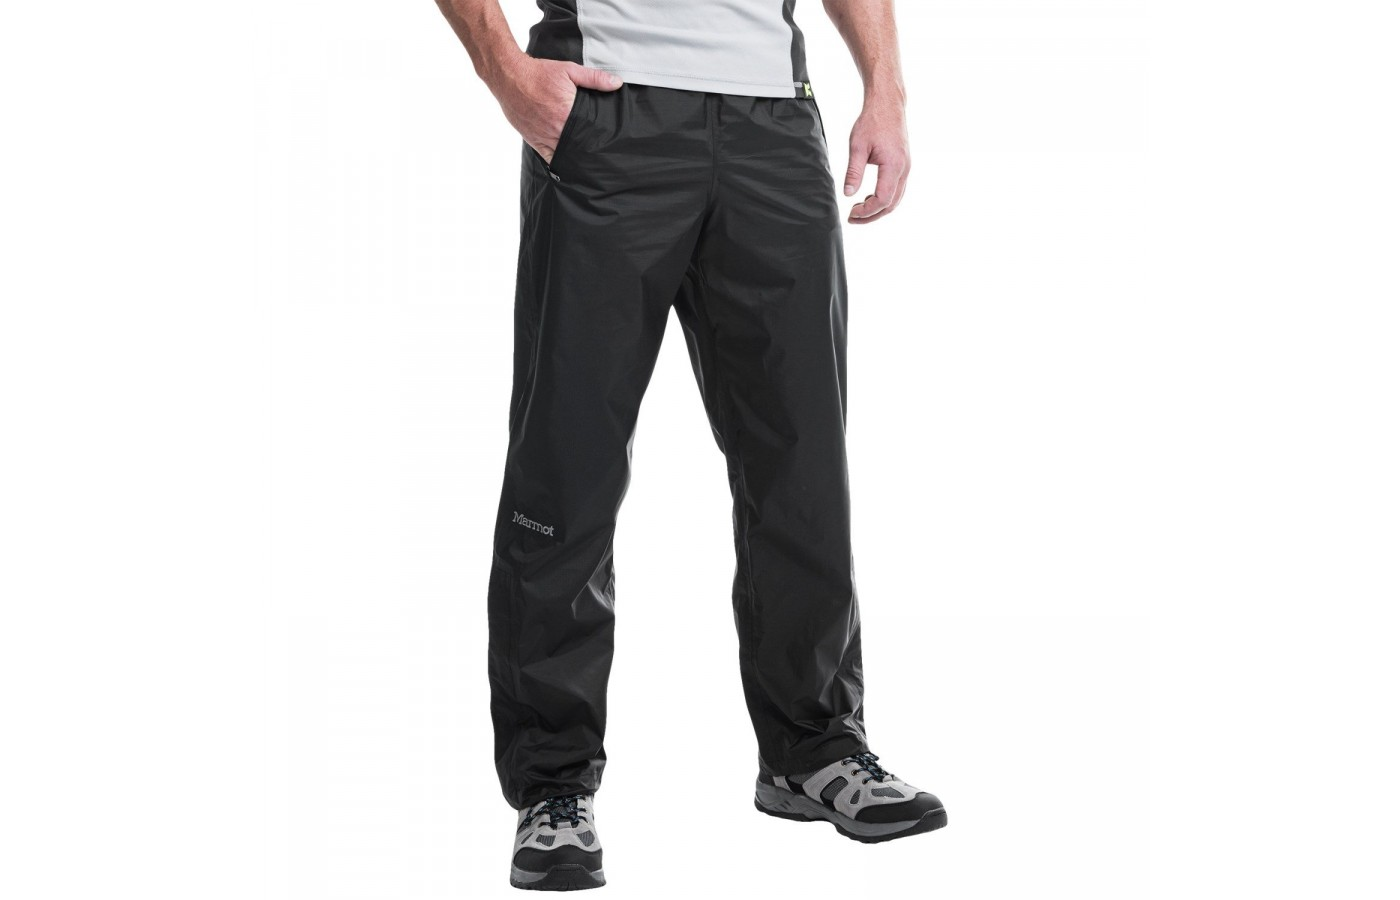 Marmot PreCip Pants are waterproof for hiking on rainy trails.